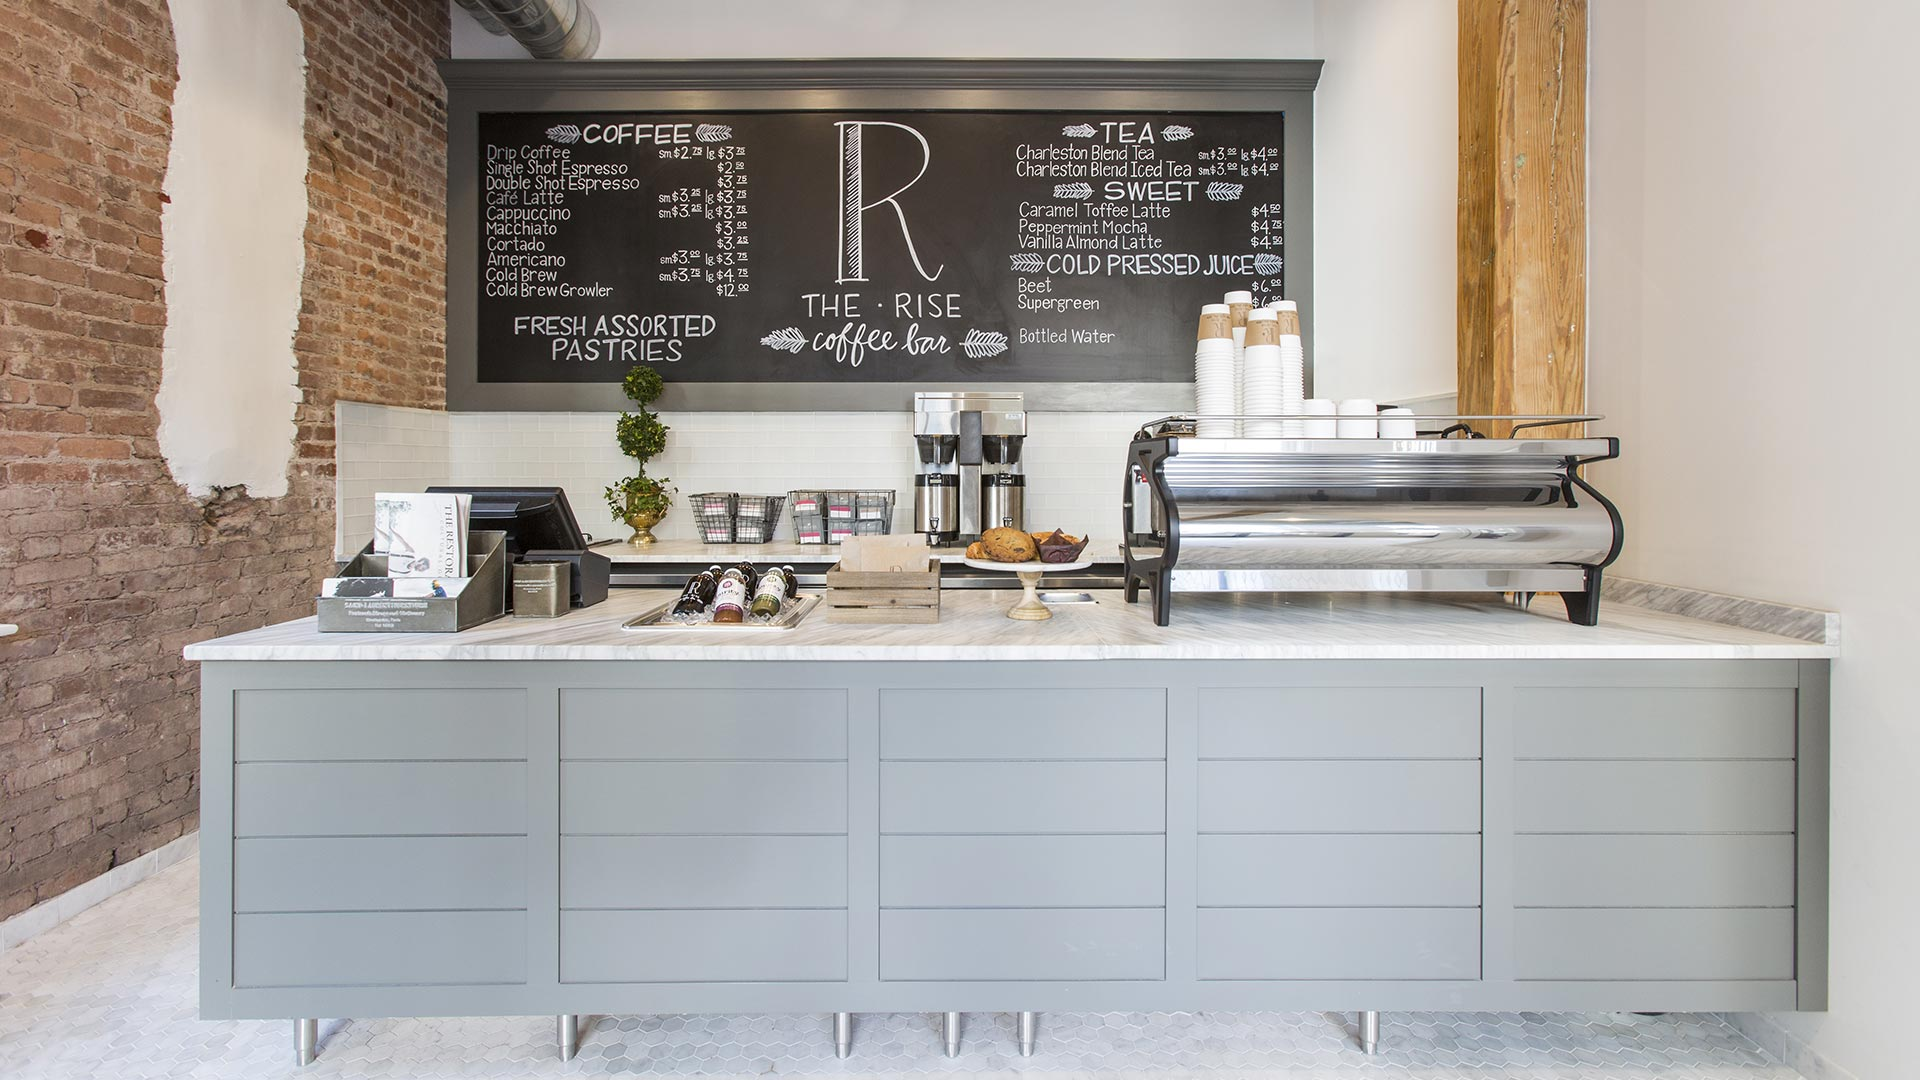 The Rise Coffee Shop